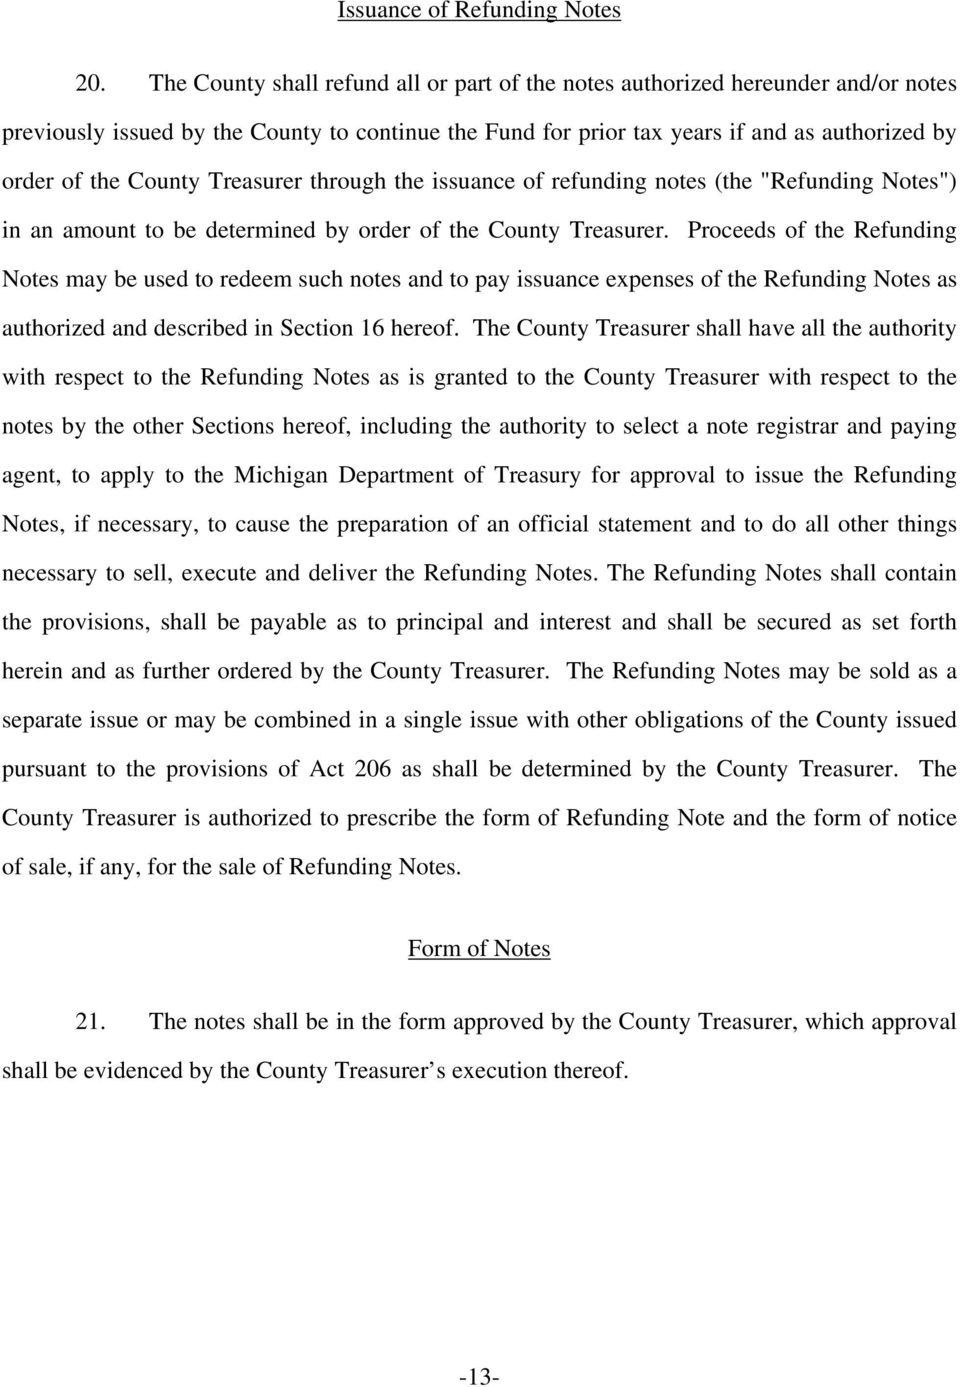 "Treasurer through the issuance of refunding notes (the ""Refunding Notes"") in an amount to be determined by order of the County Treasurer."